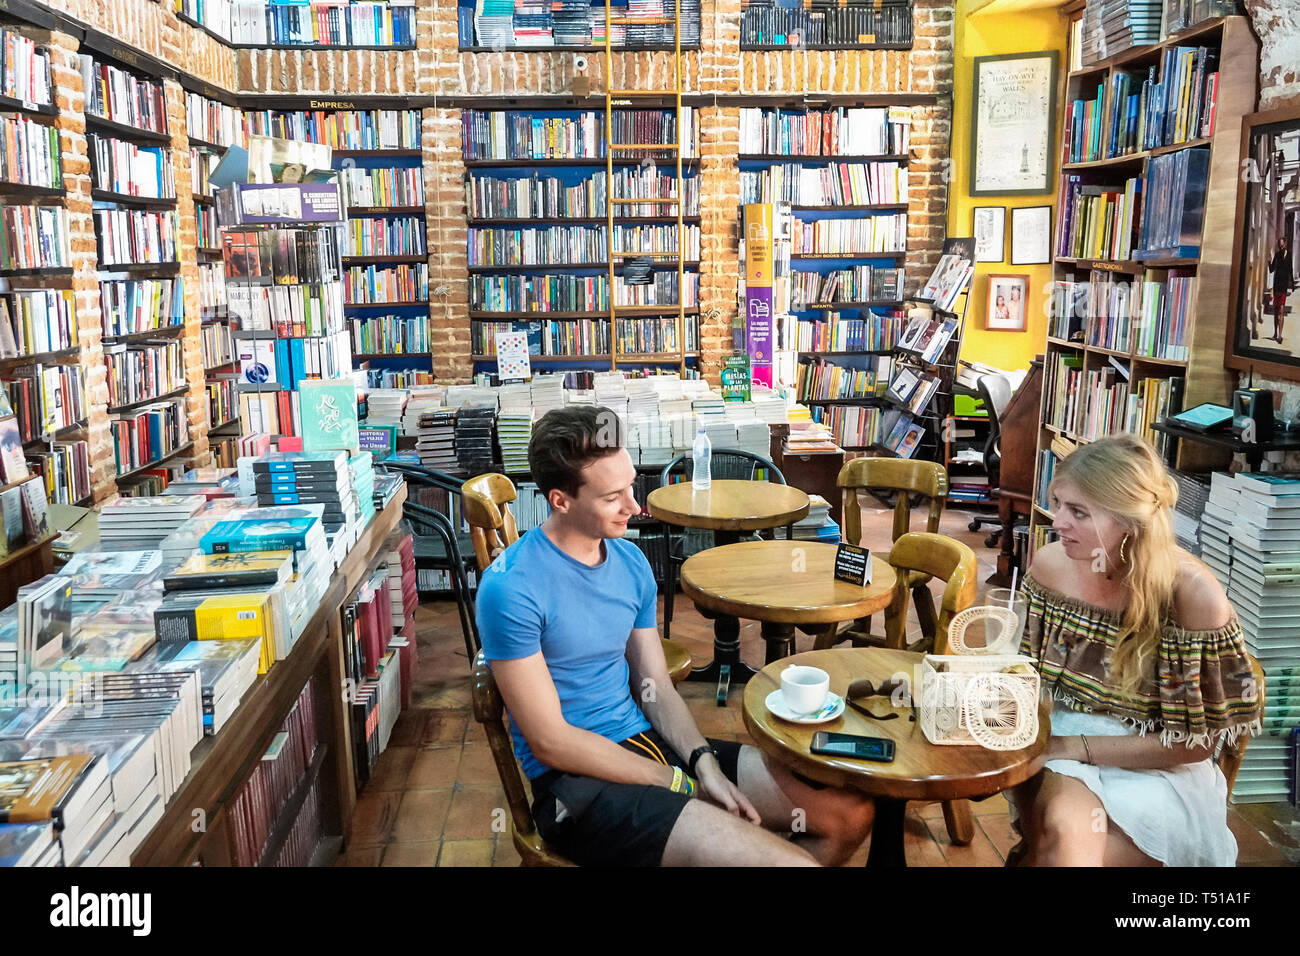 Cartagena Colombia Old Walled City Center centre Centro Abaco Libros y Cafe Abacus bookstore cafe interior bookshelf bookshelves exposed brick table d Stock Photo